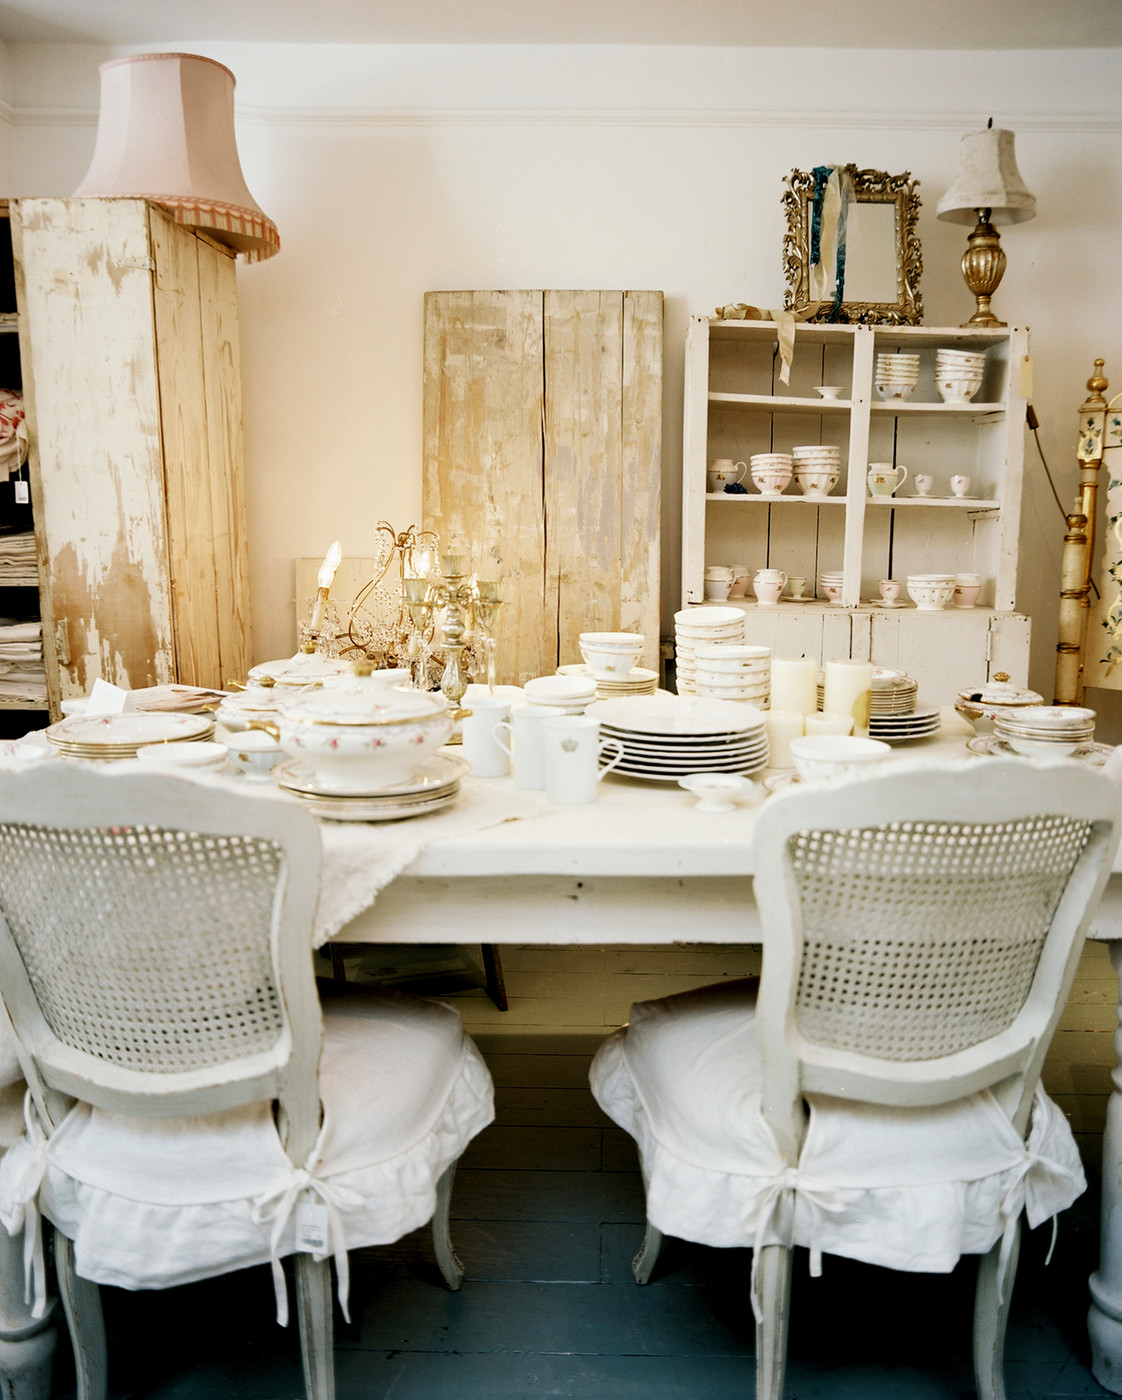 Shabby chic dining room photos 12 of 13 for Dining room photos